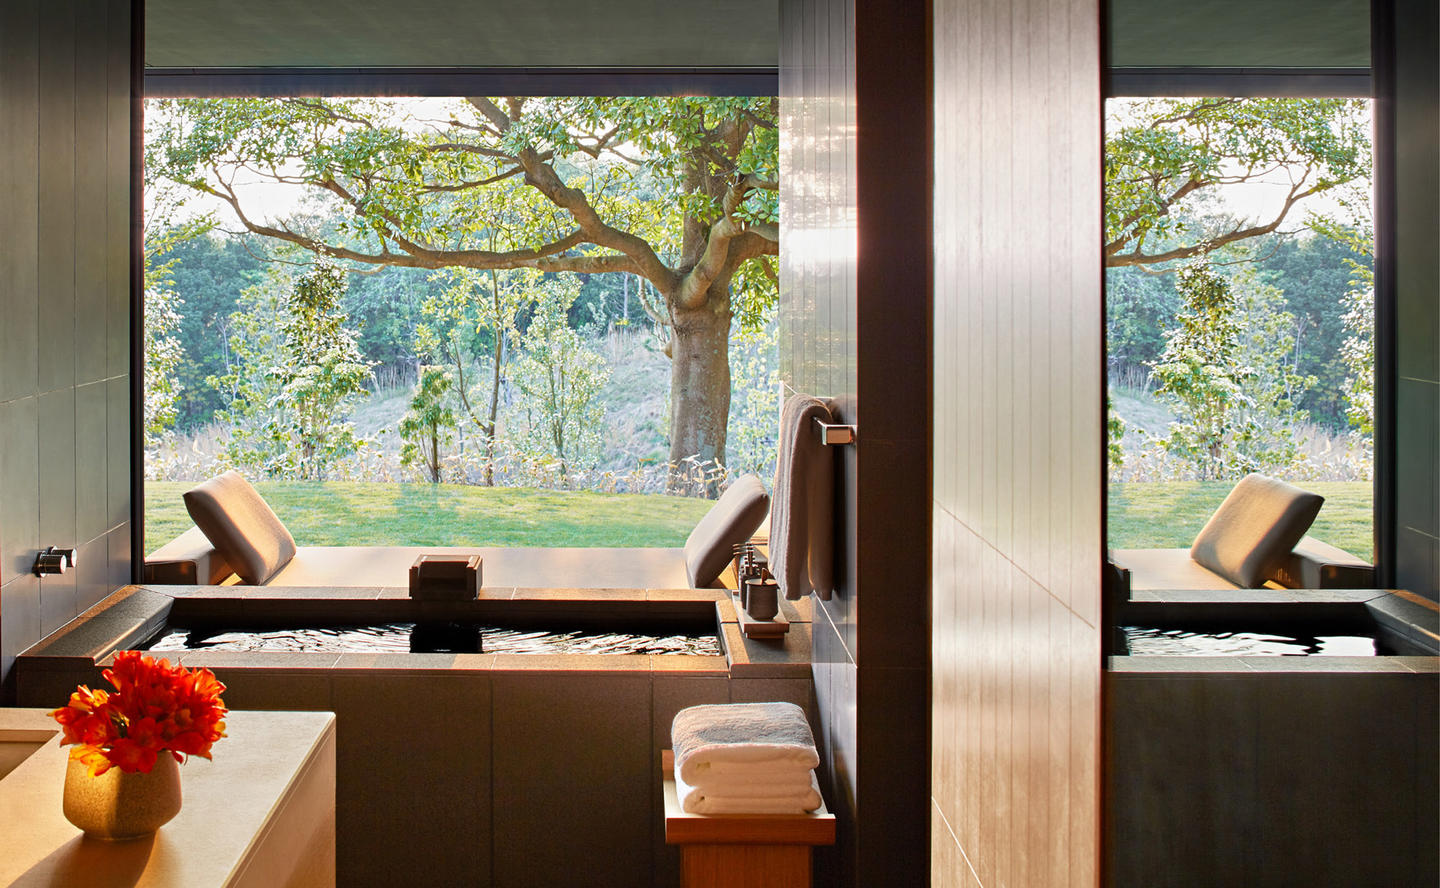 Bathroom with Onsen, Mori Suite - Amanemu, Japan